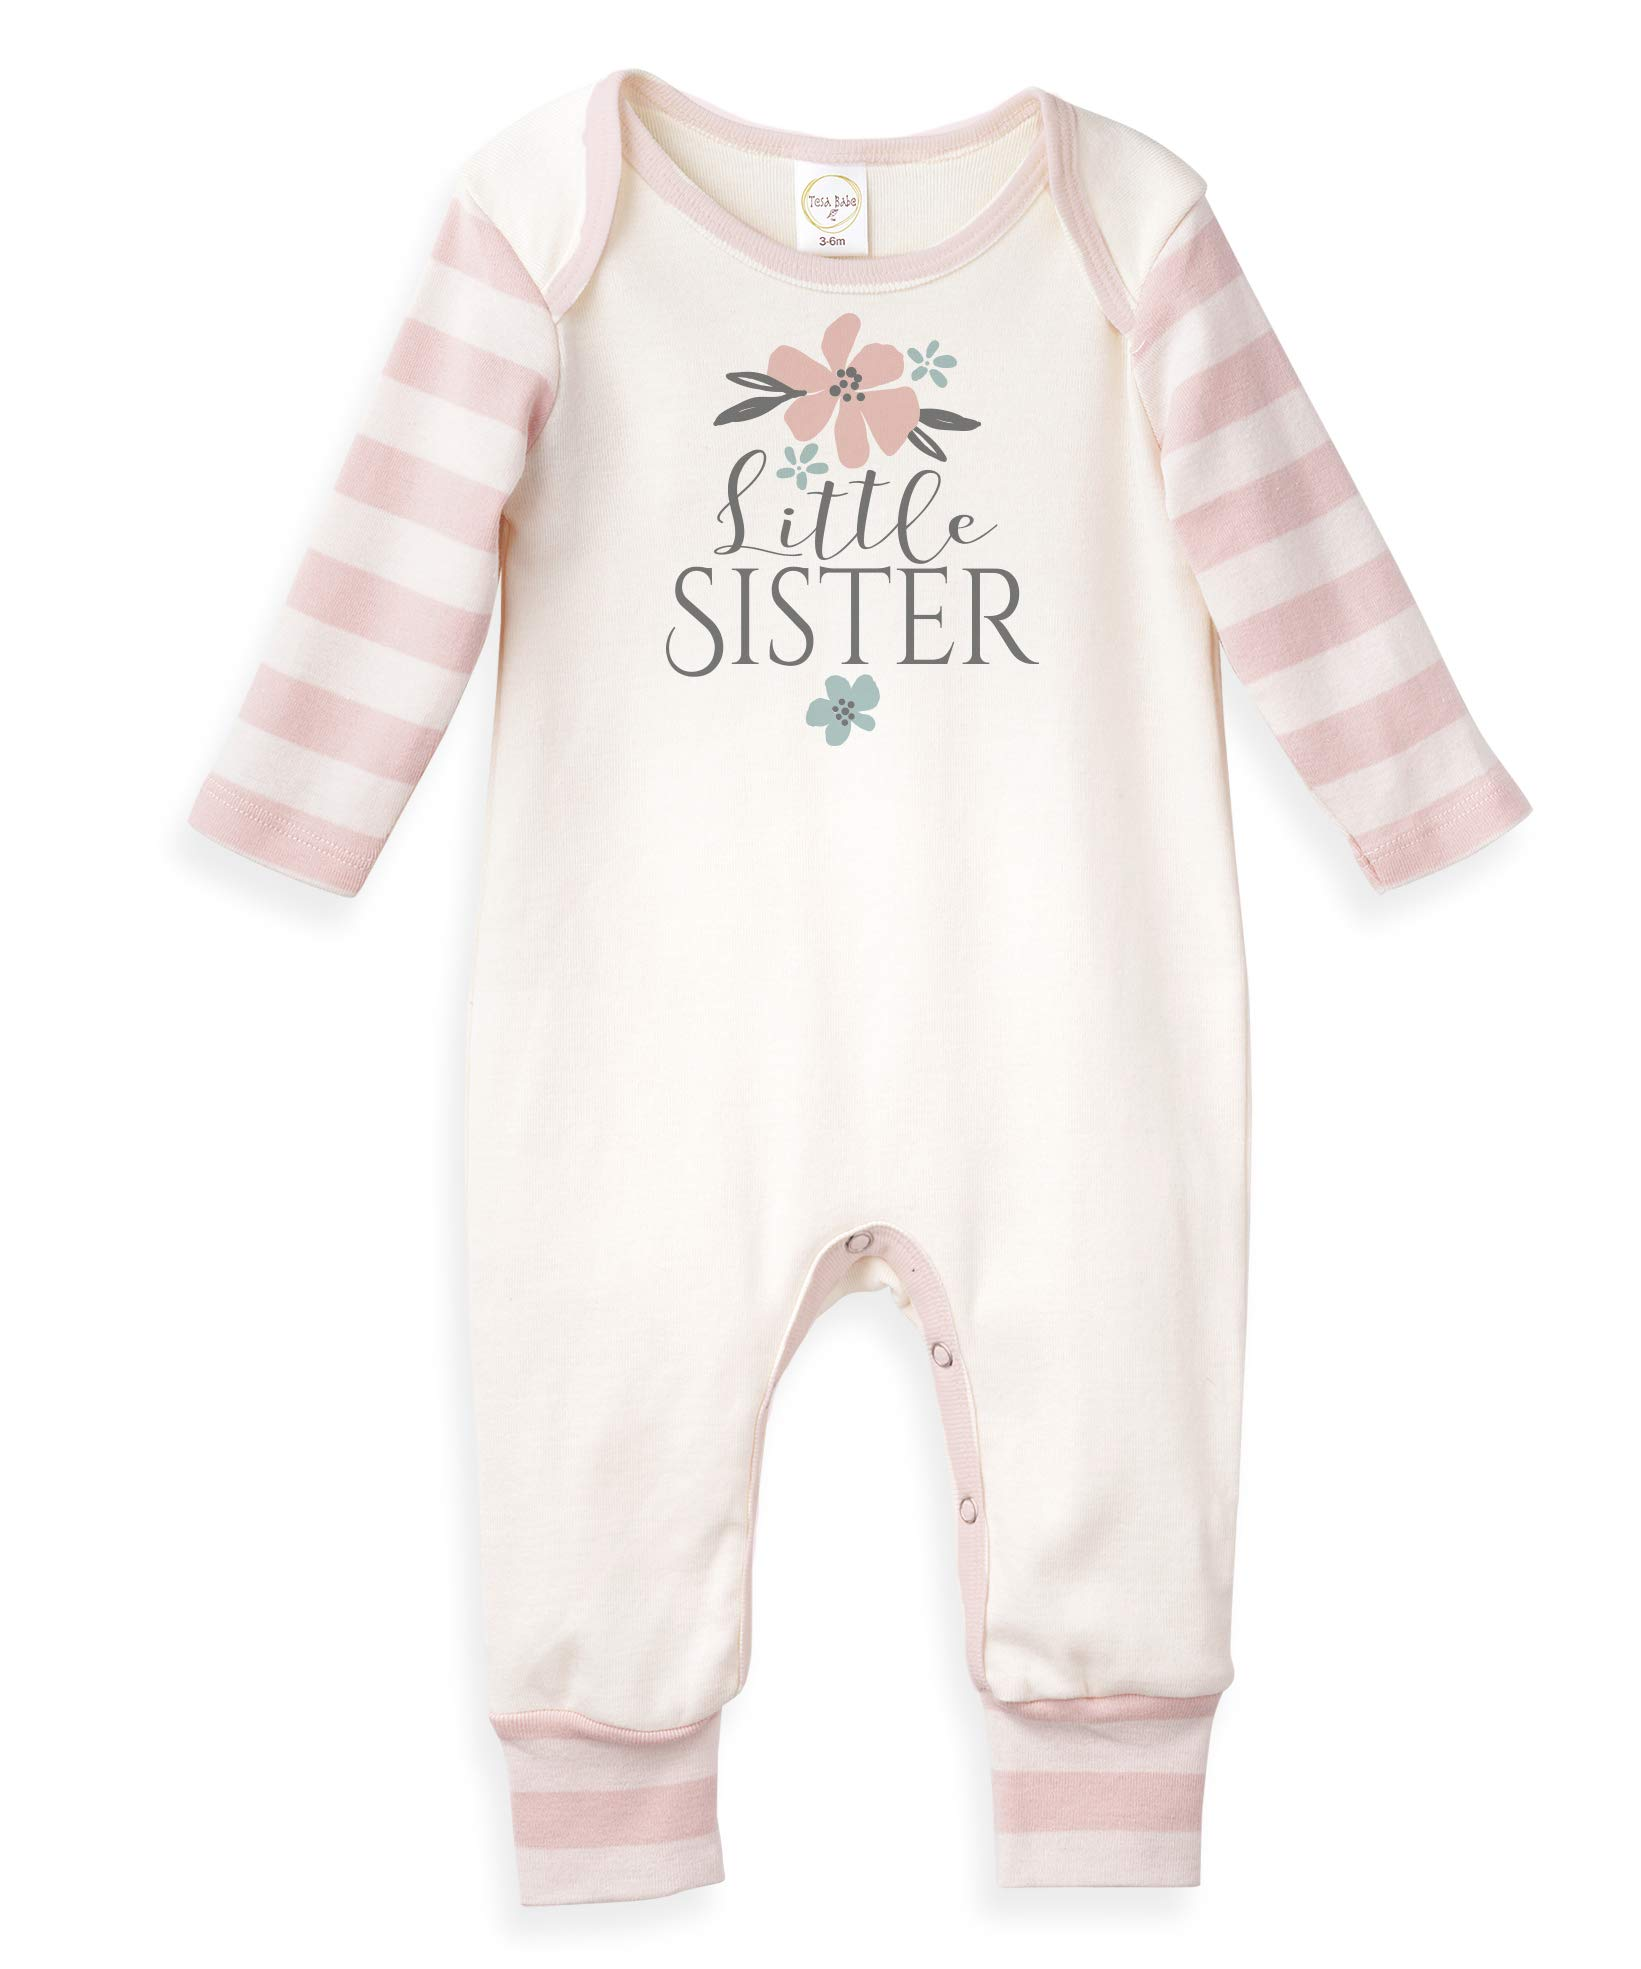 Tesa Babe Little Sister Romper for Newborns, Baby